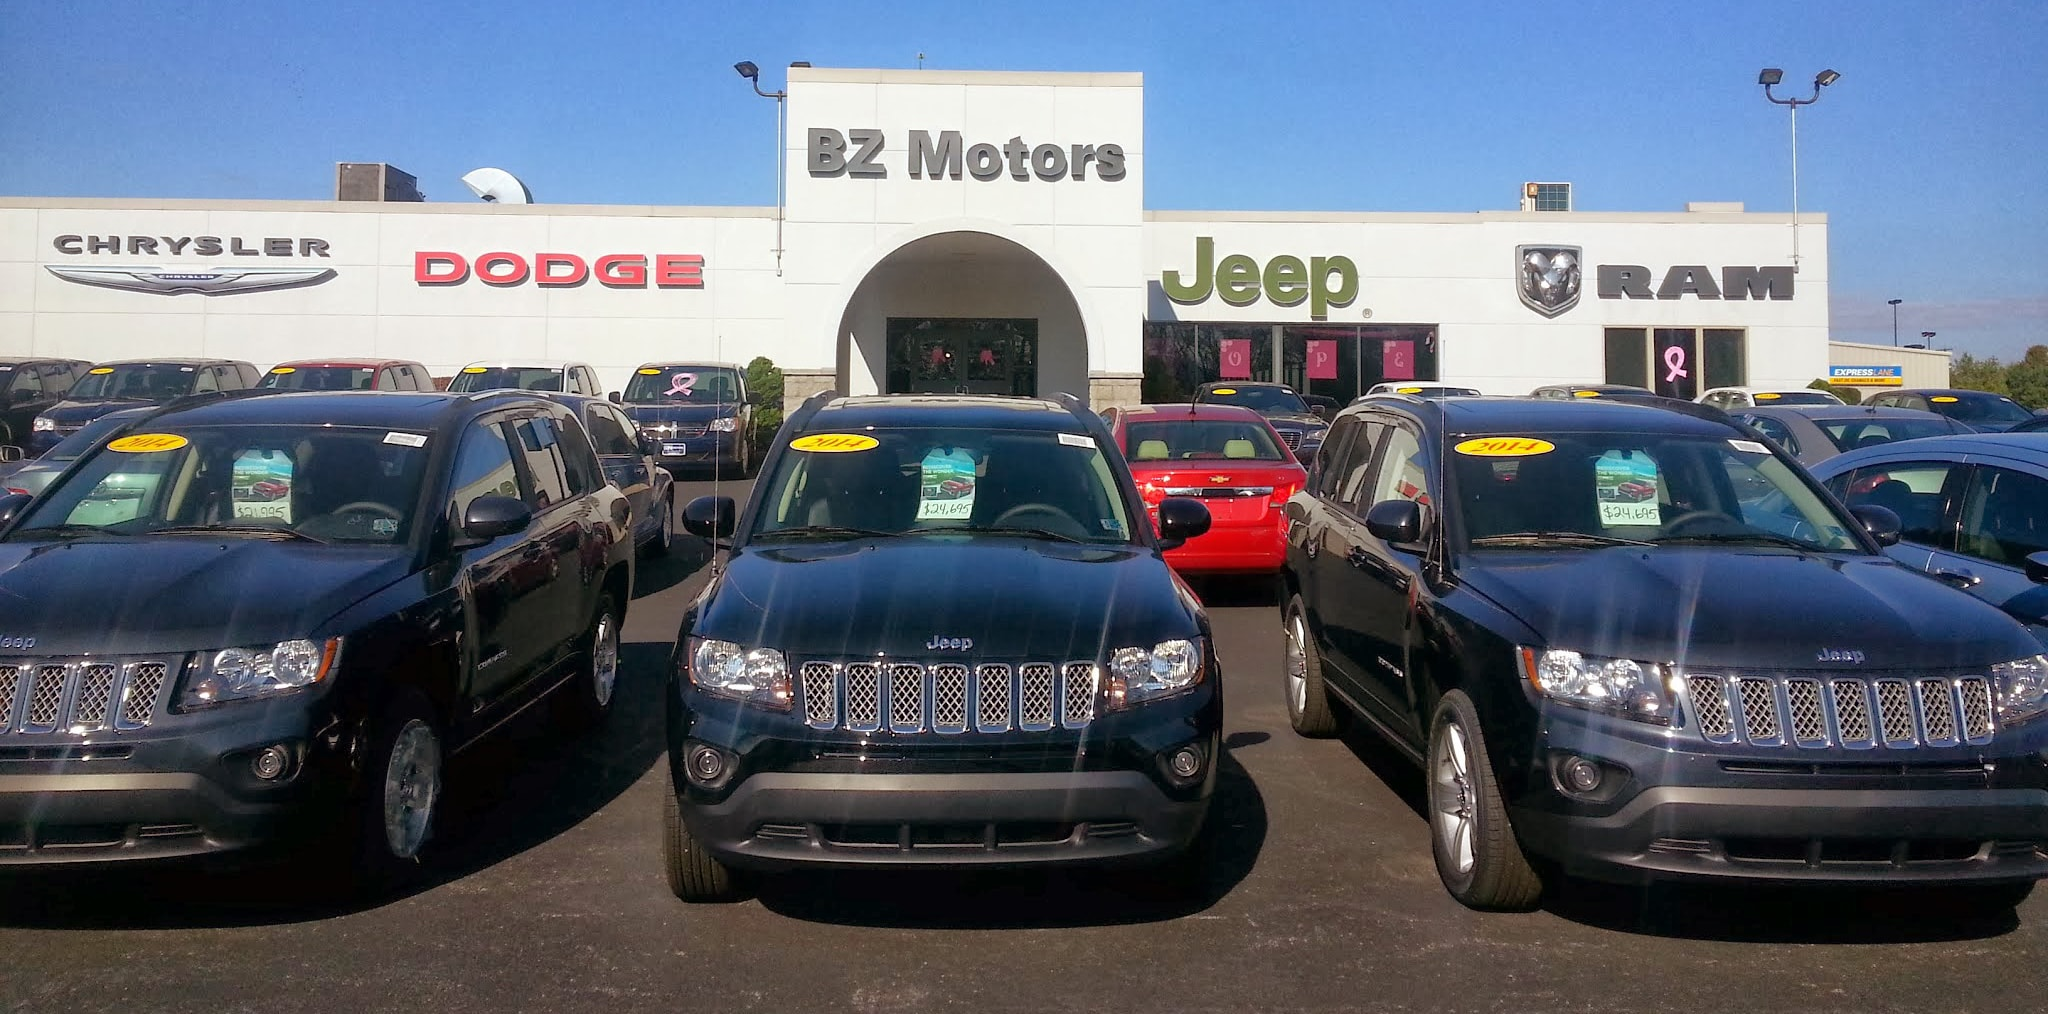 car dealership chrysler used about jeep htm new ram and finch dealer dodge ltd